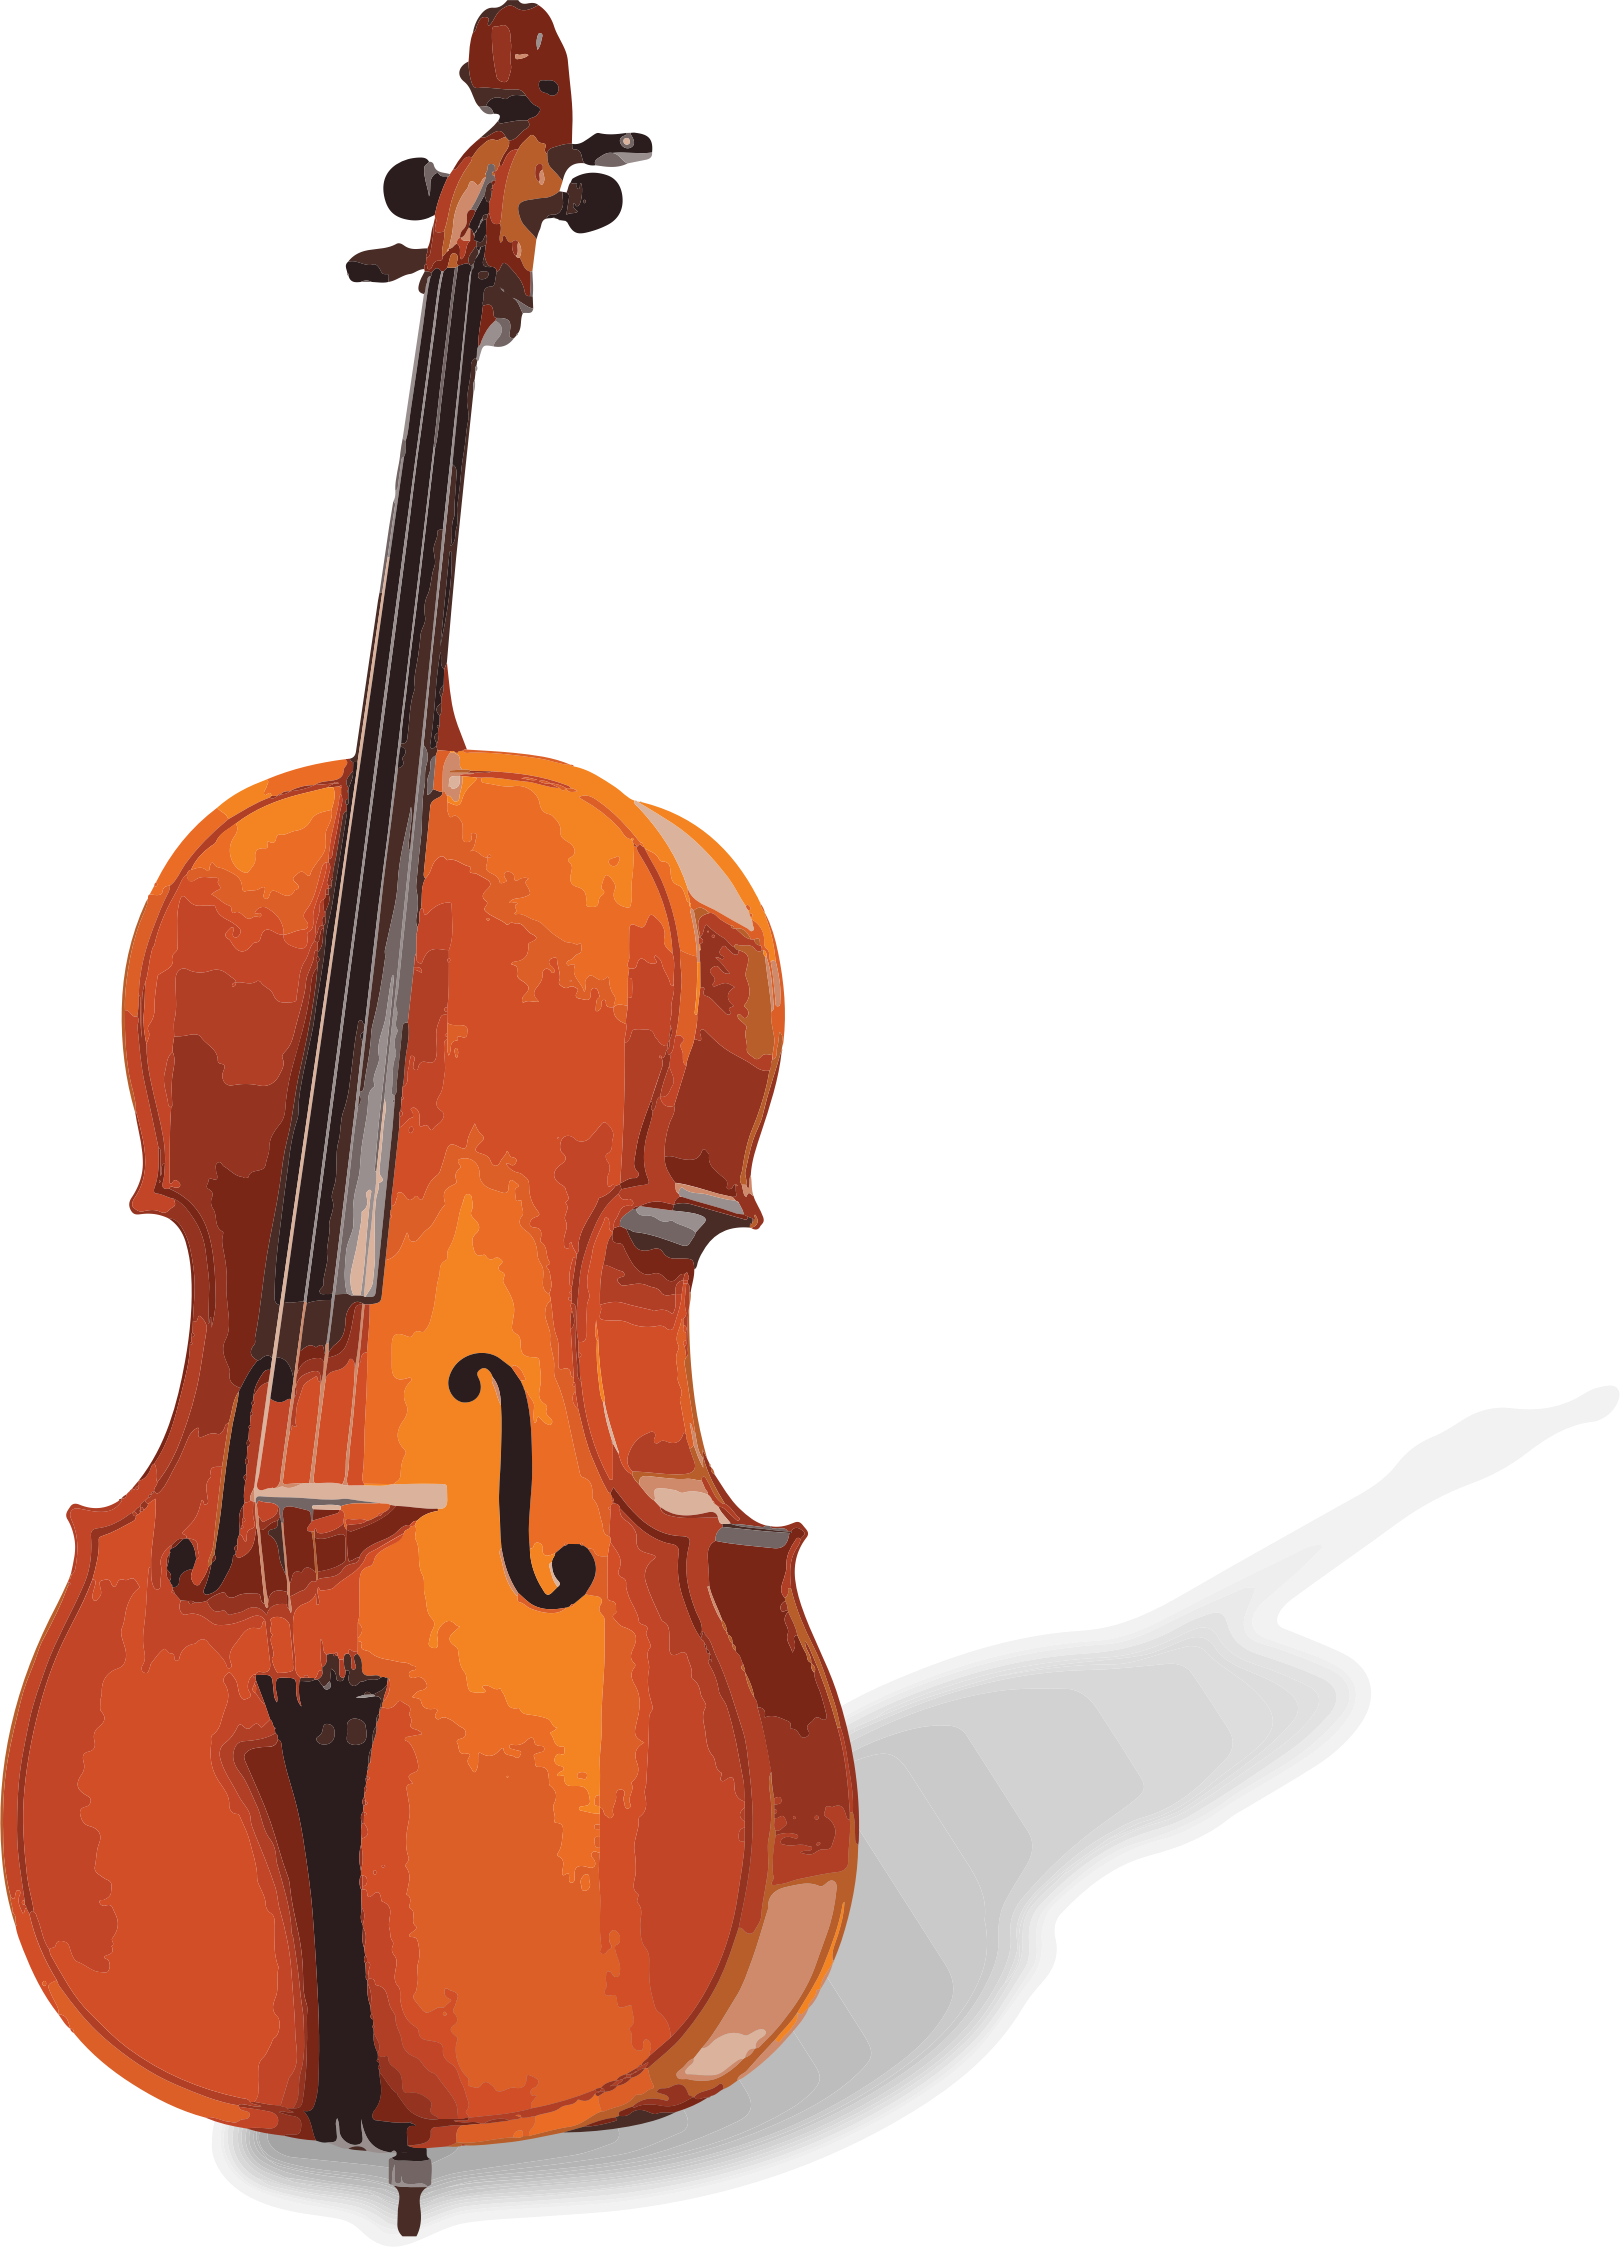 Png free download mart. Cello clipart transparent background